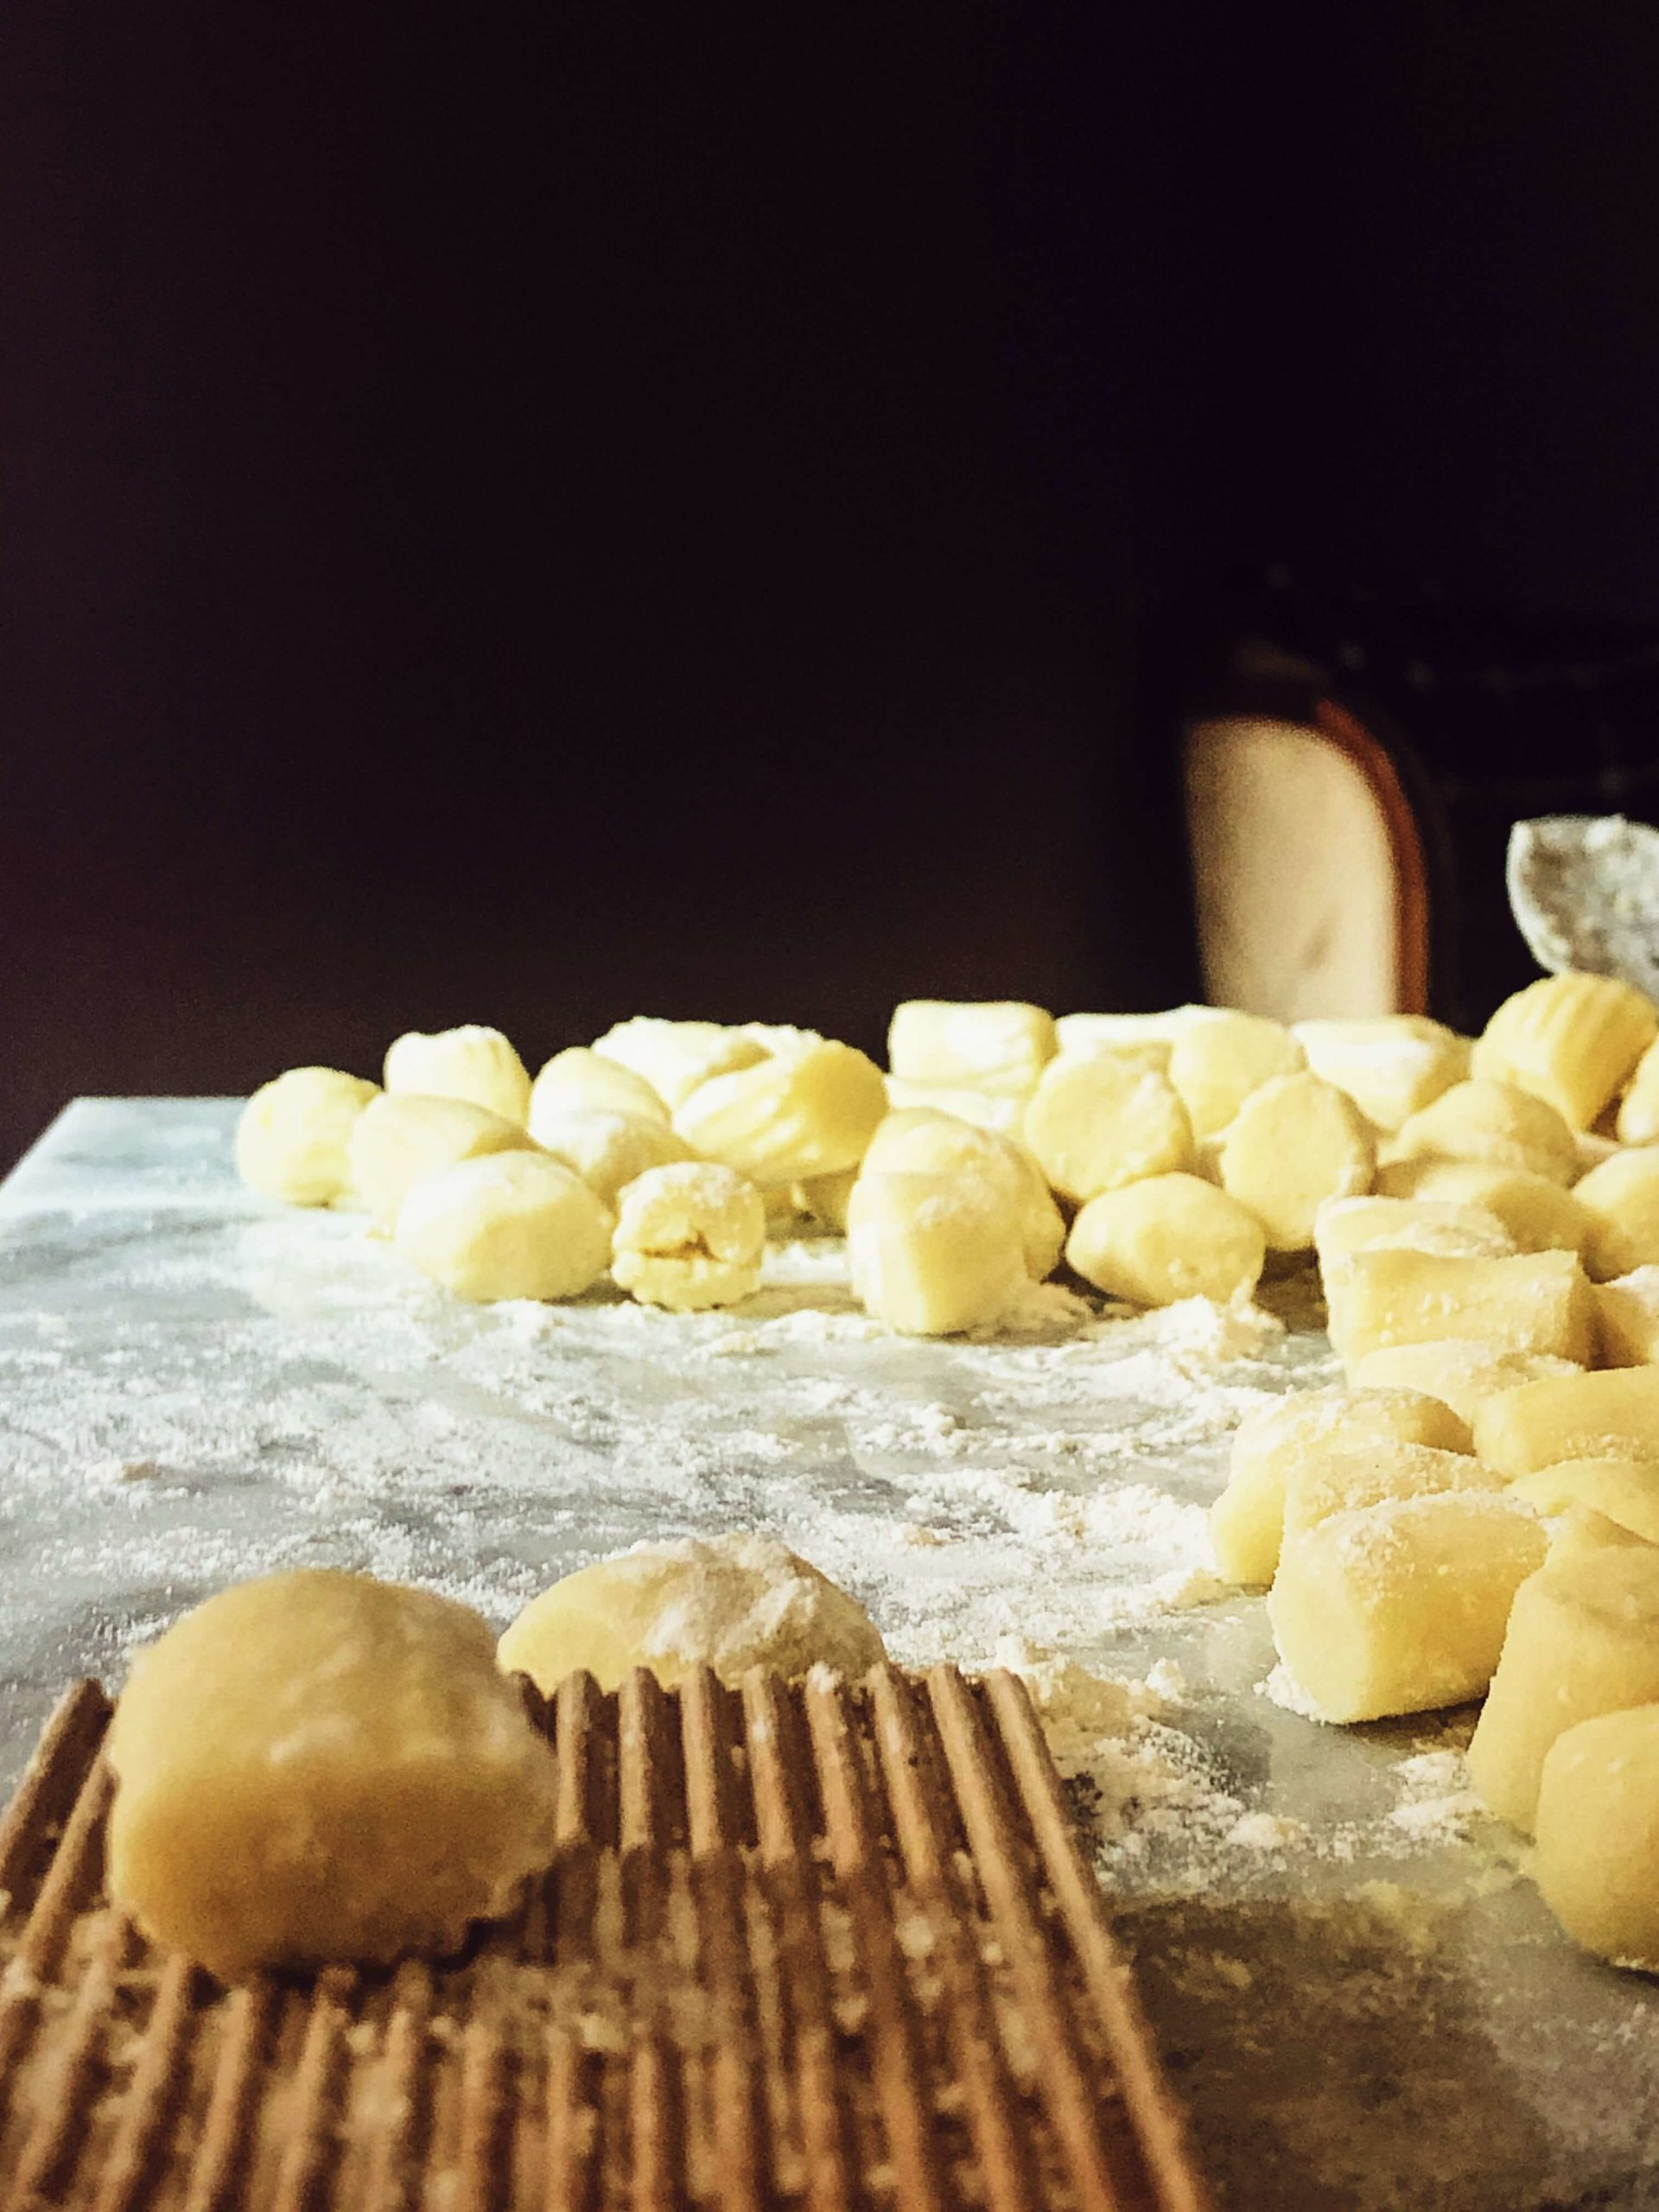 How to make and engrave authentic Italian gnocchi